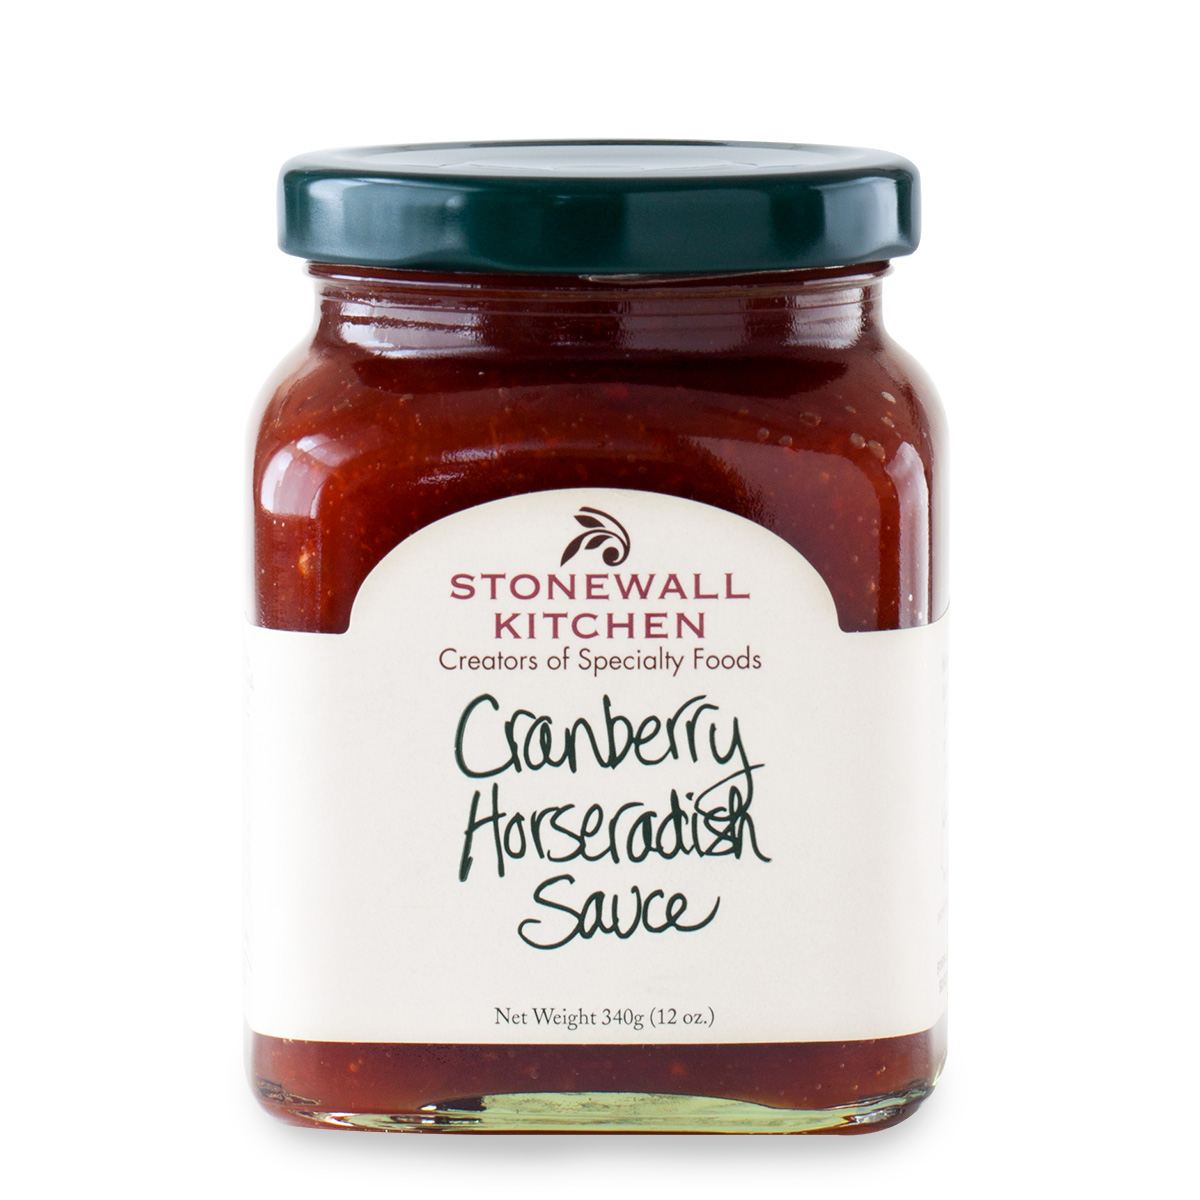 stonewall kitchen com best paint cranberry horseradish sauce condiments